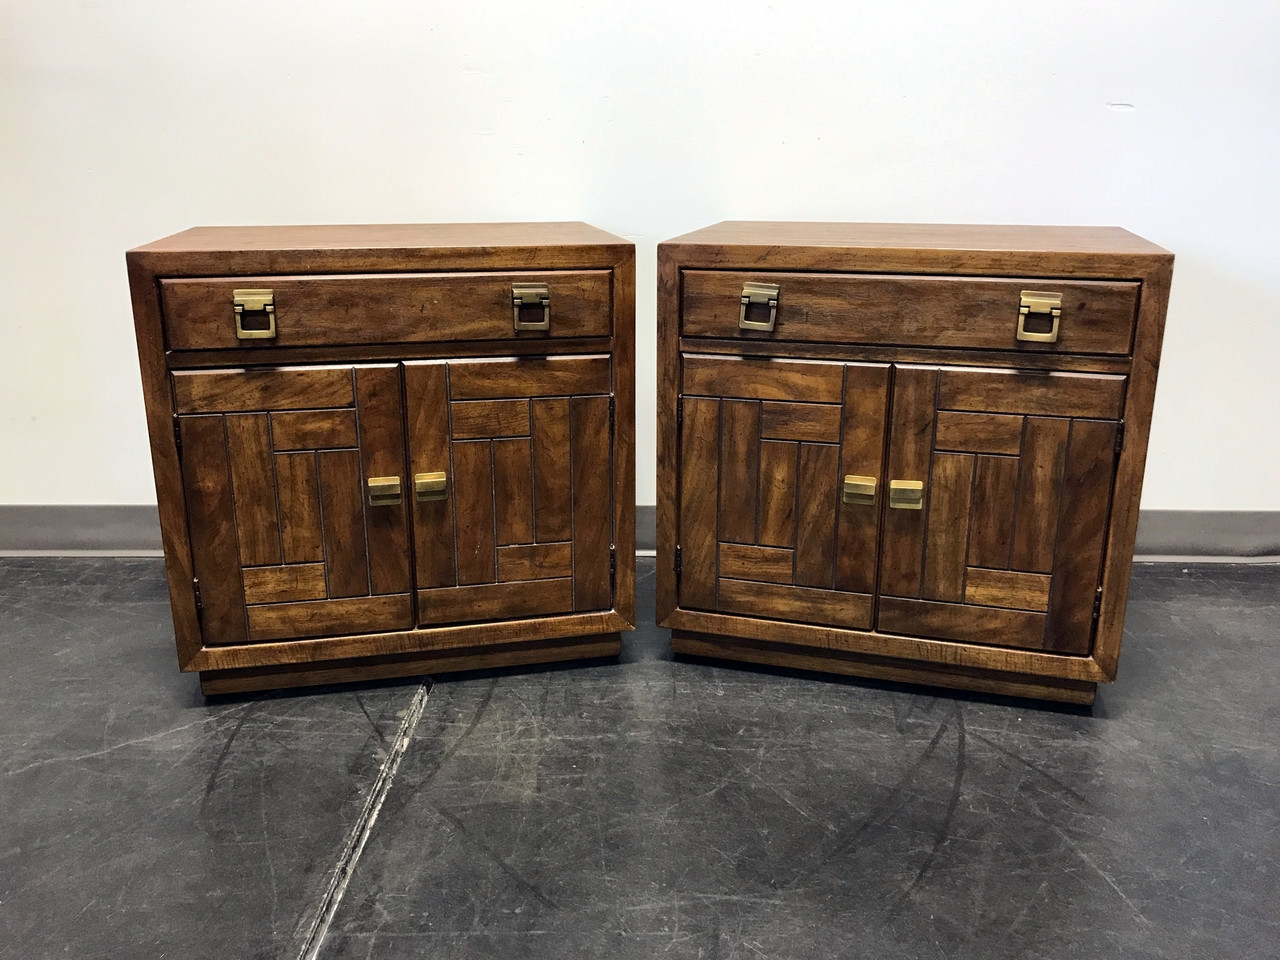 SOLD OUT   DREXEL HERITAGE Woodbriar Pecan Campaign Style Bedside Chests  Nightstands   Pair